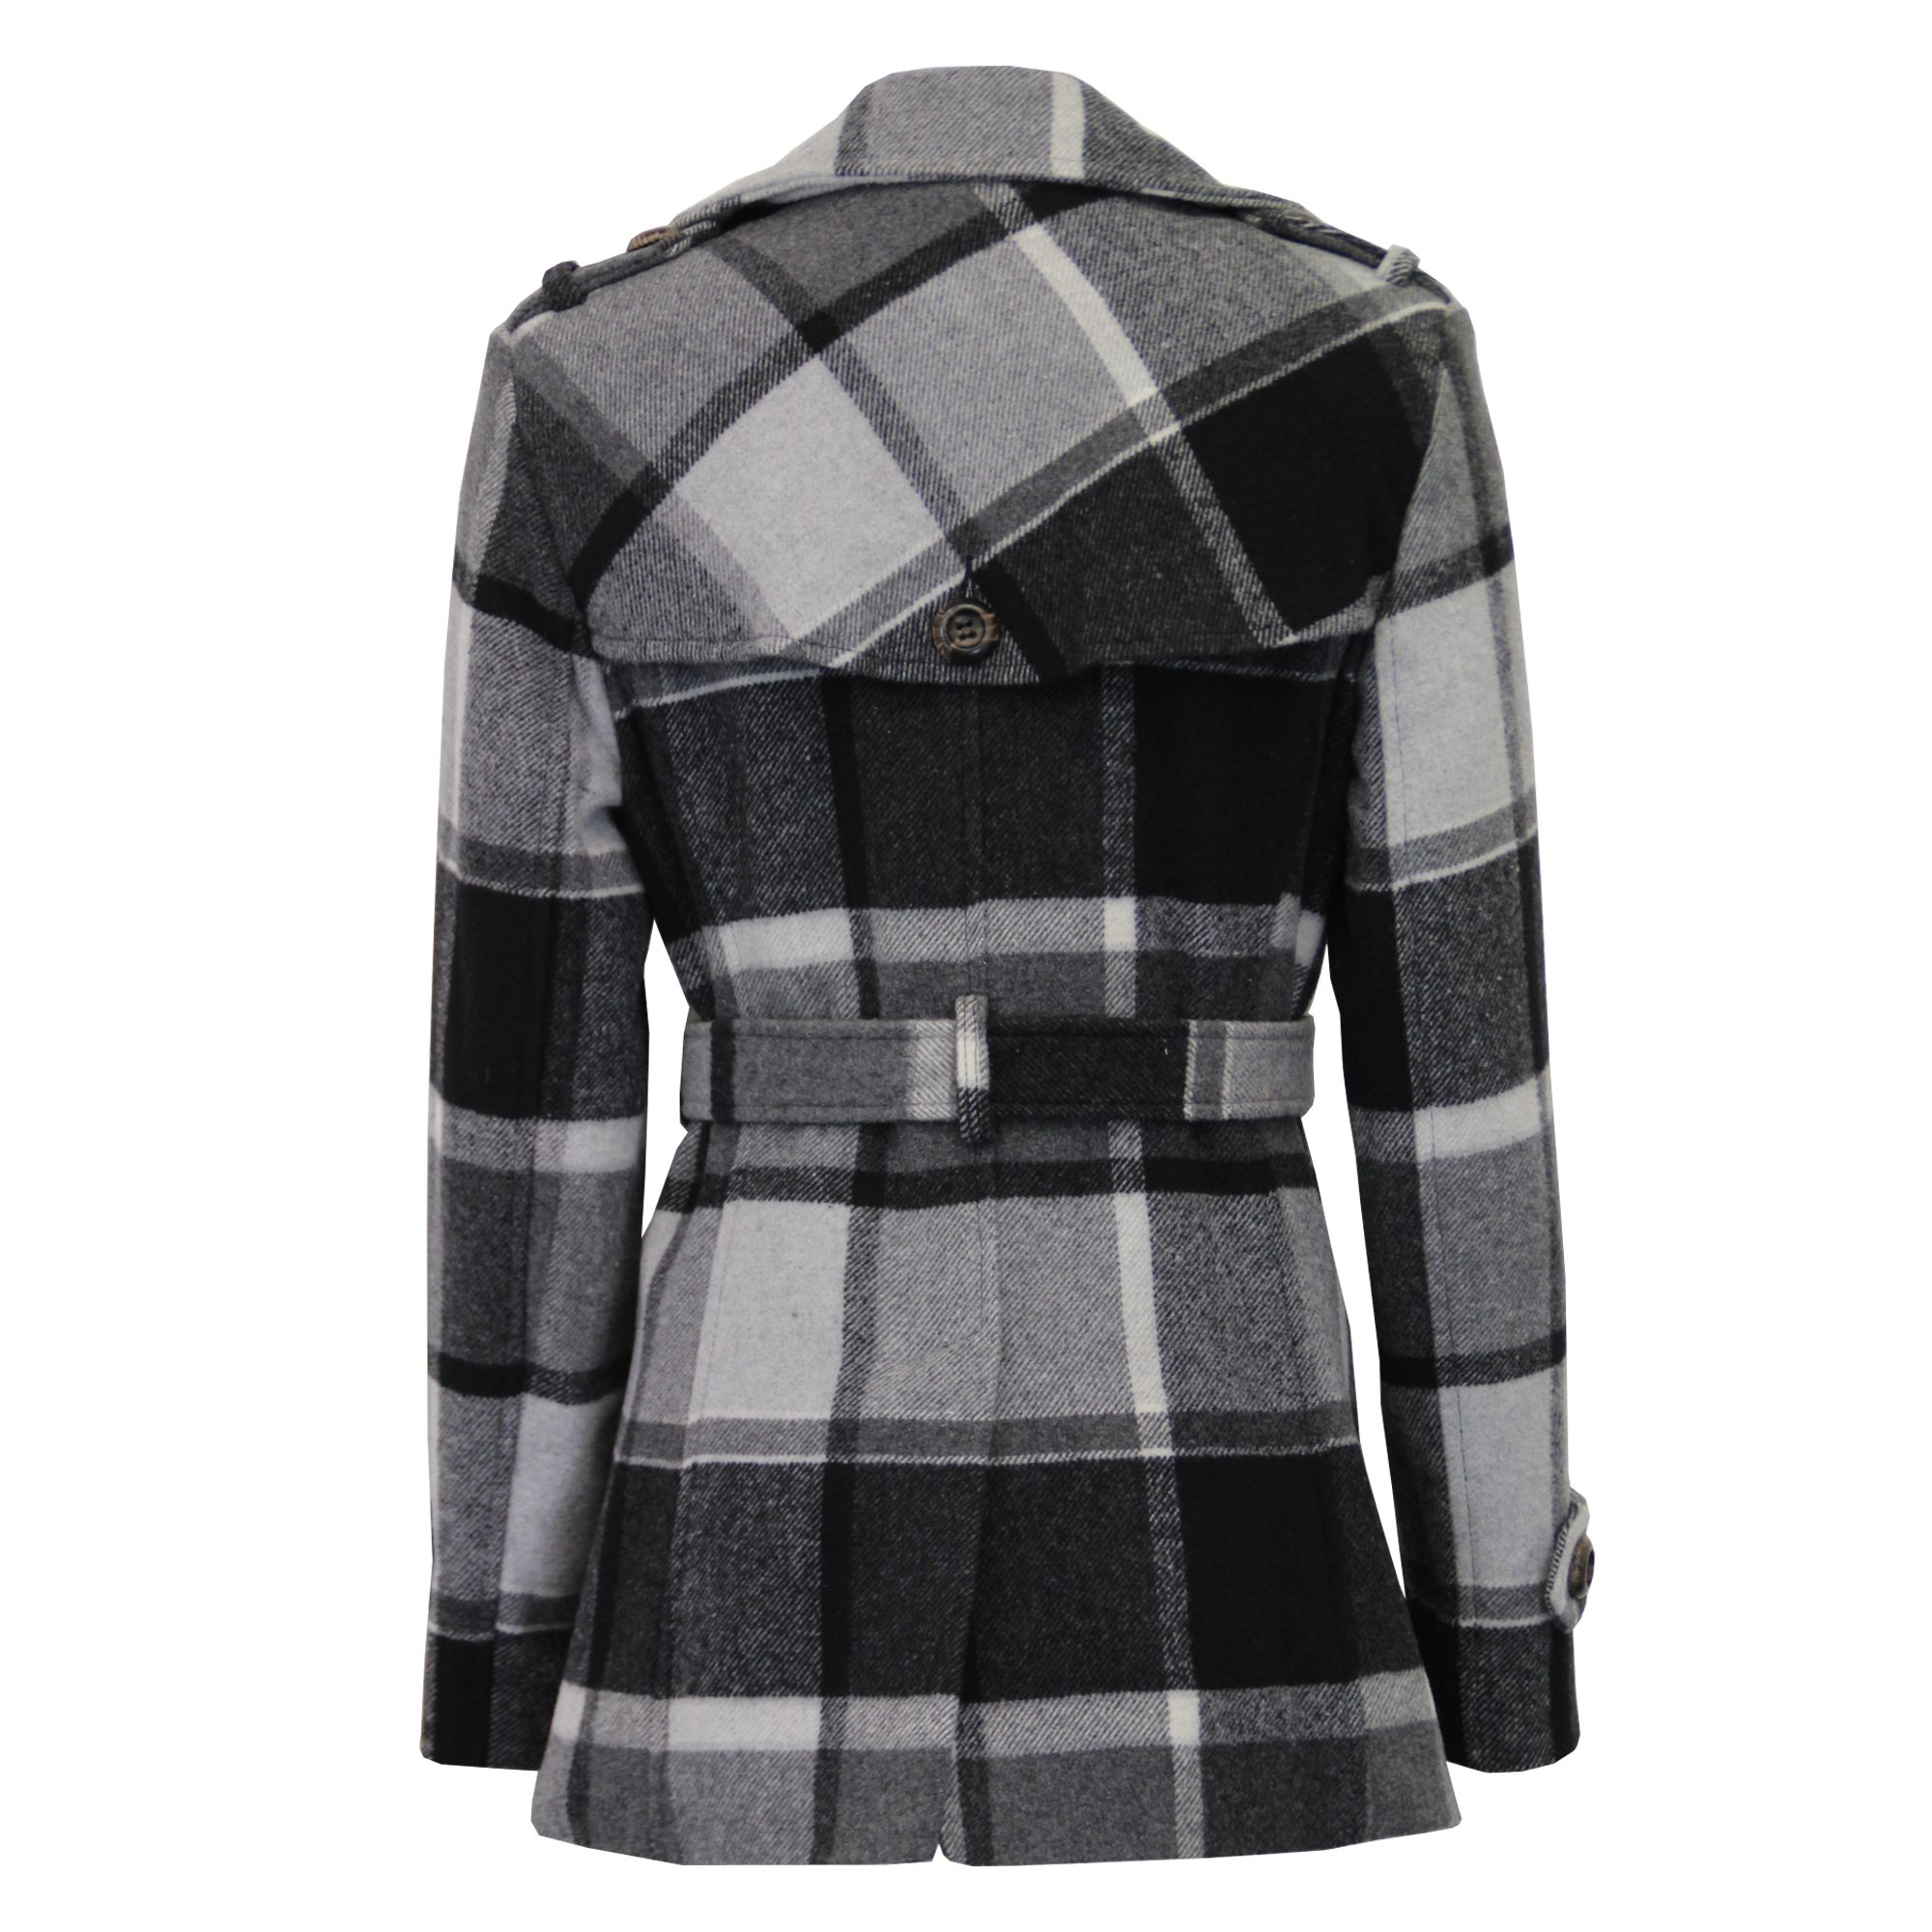 Ladies-Wool-Cashmere-Coat-Womens-Jacket-Double-Breasted-Belt-Checked-Trench-New thumbnail 15